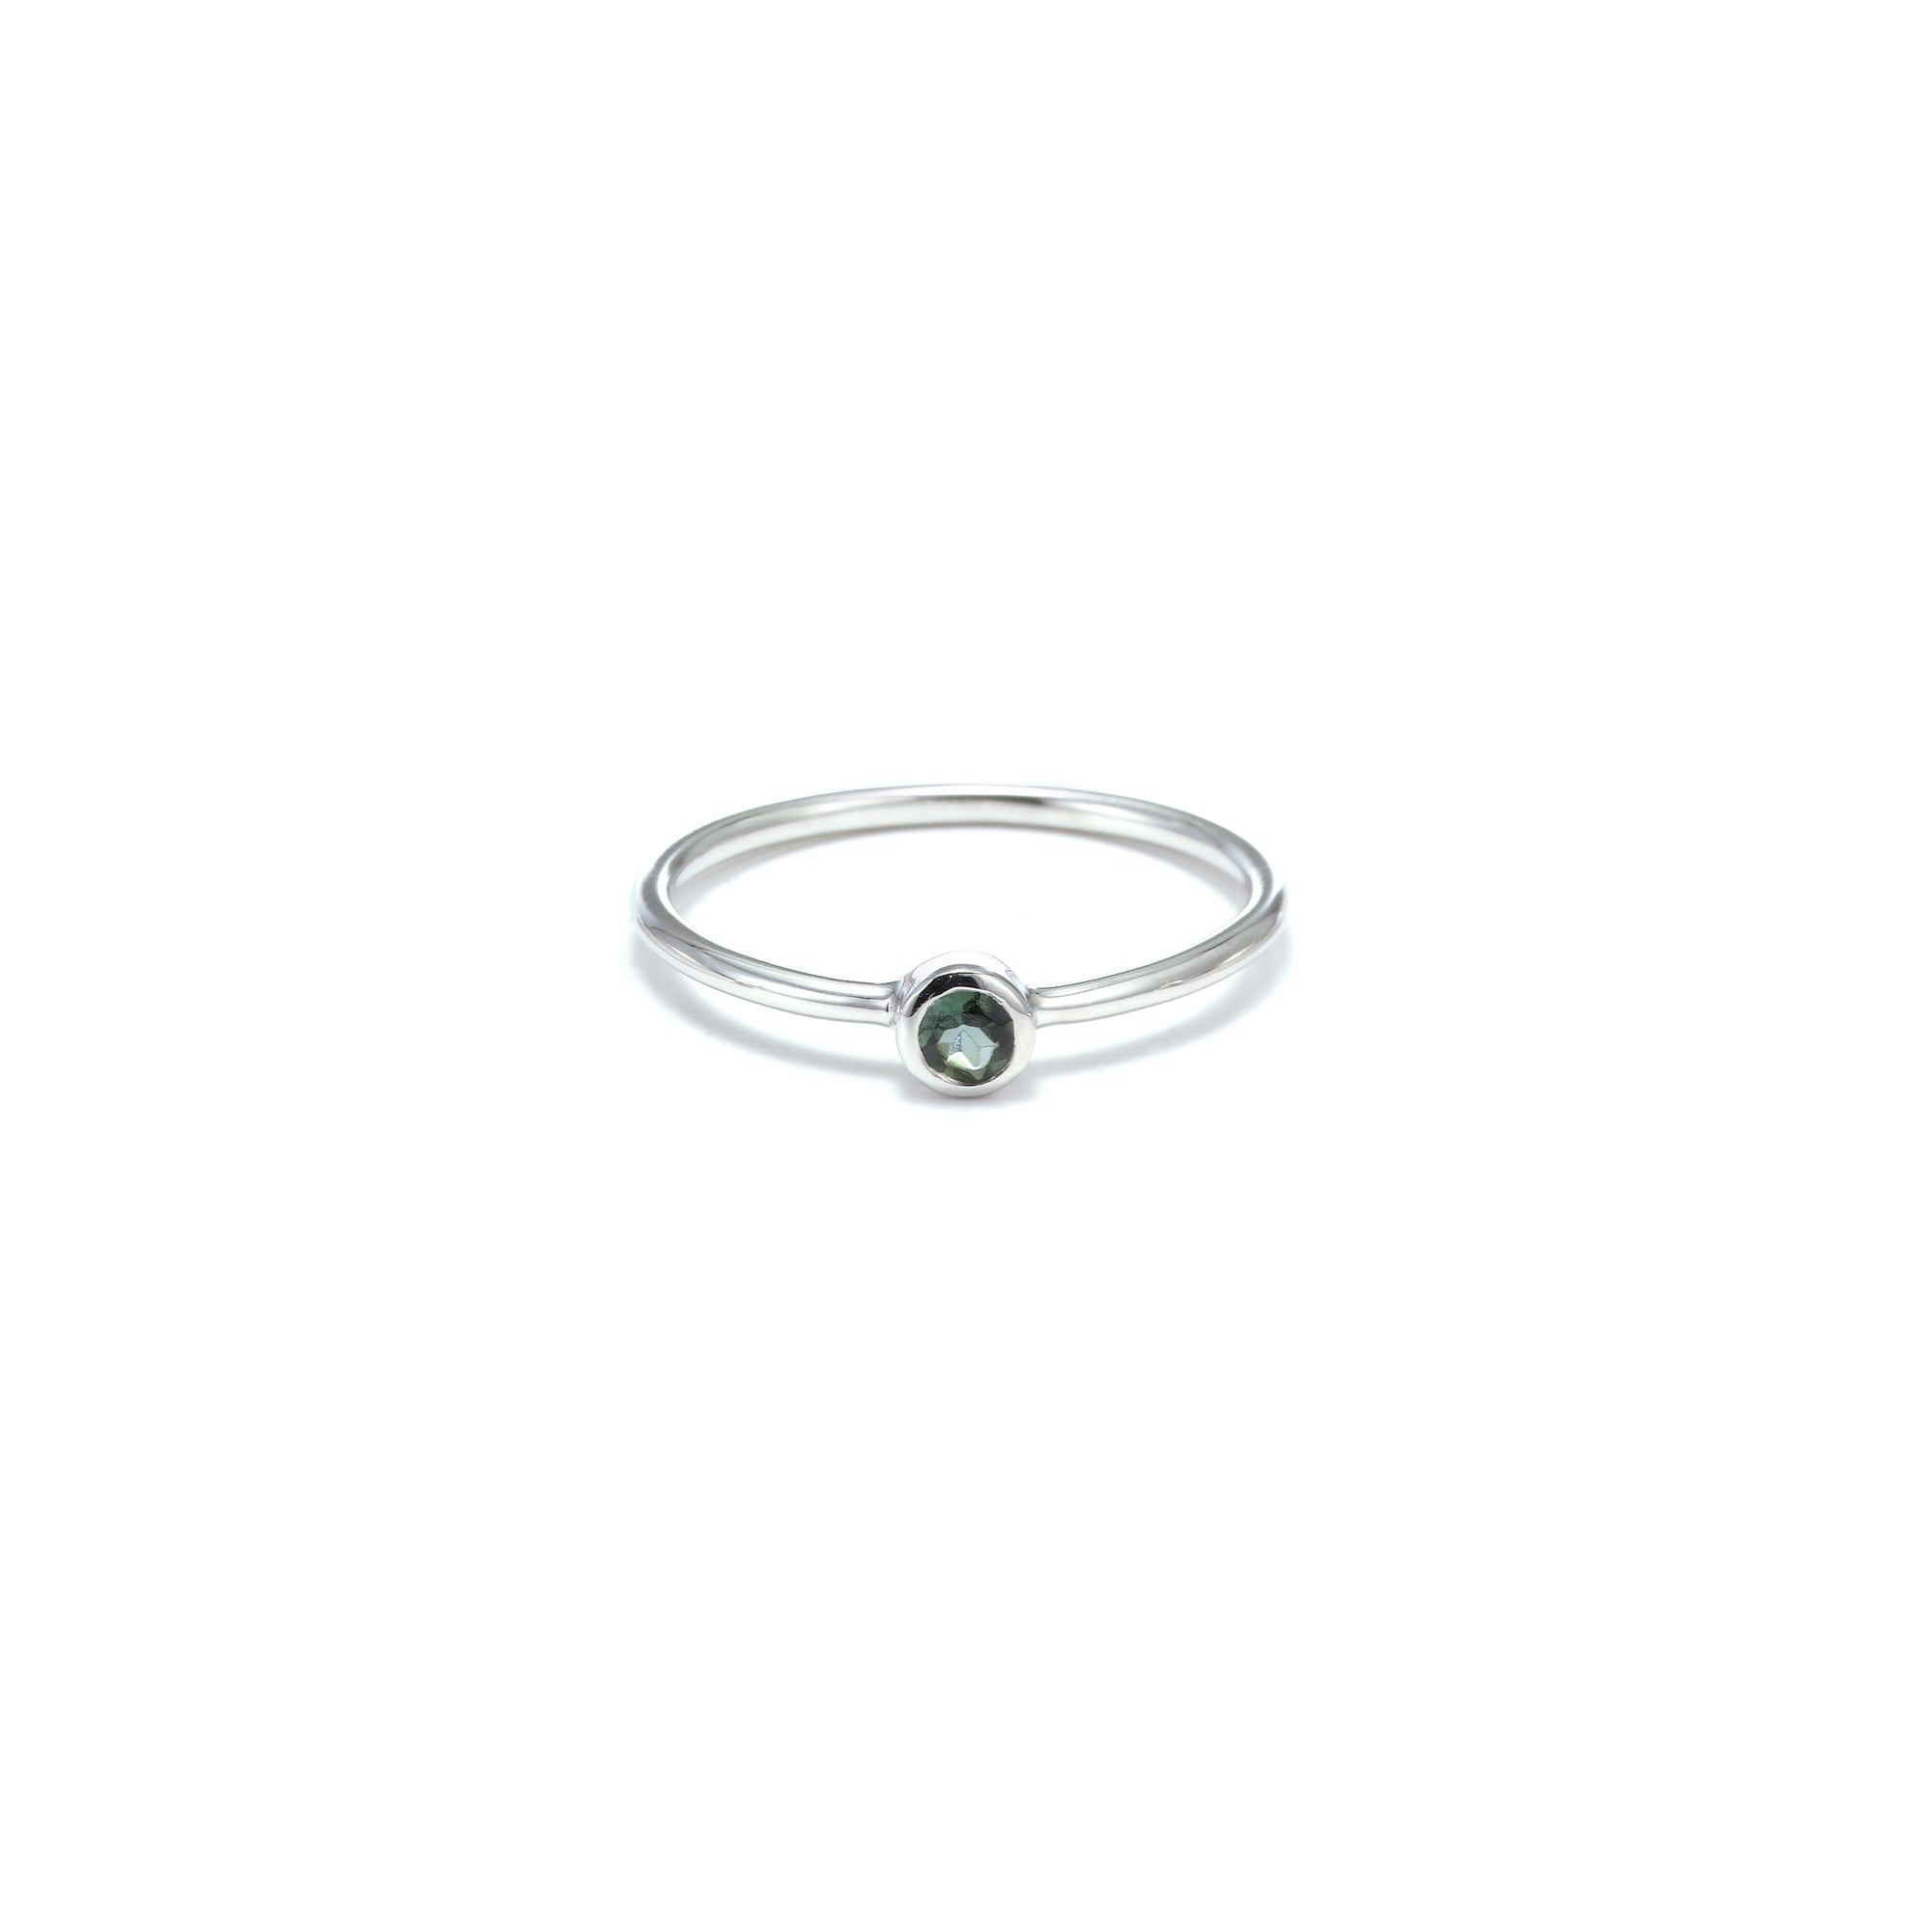 AXIS / Ring / Pistil / Silver + Green Tourmaline